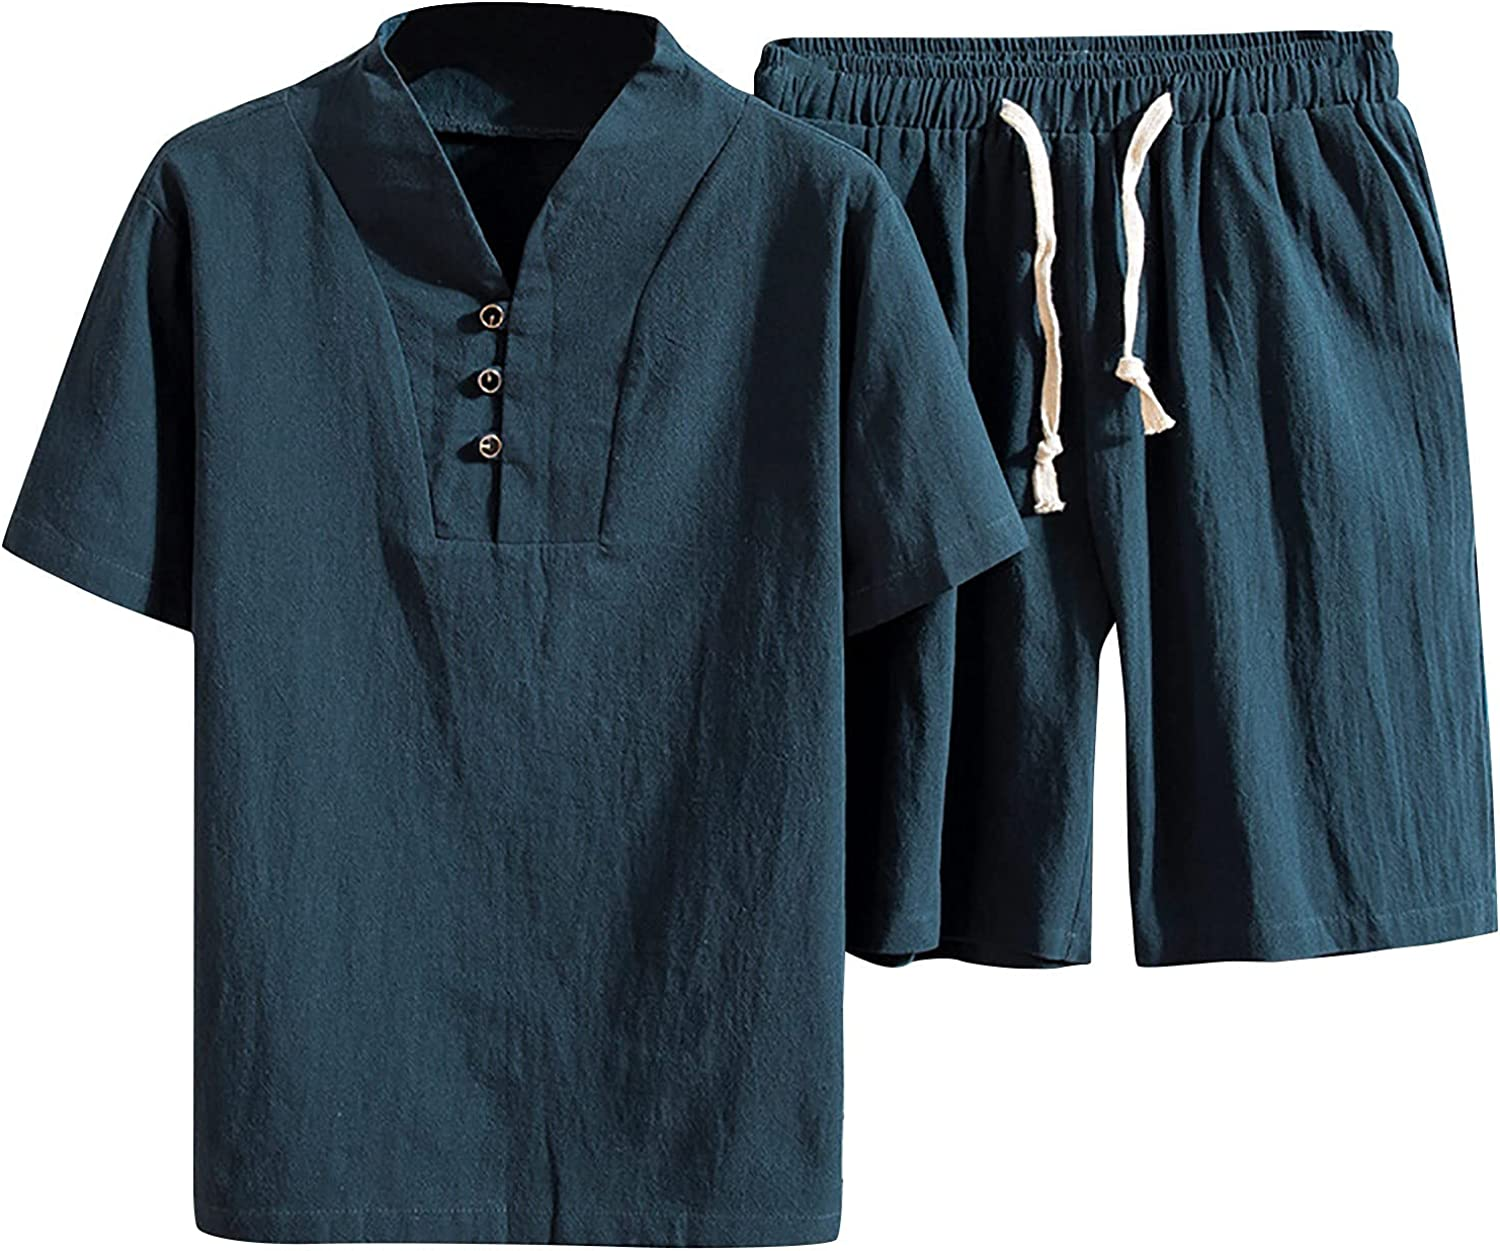 Mens Casual Short Sets Outfits 2 Piece Summer Big and Tall Solid Color Short-Sleeved T-Shirt Plus Size Casual Set